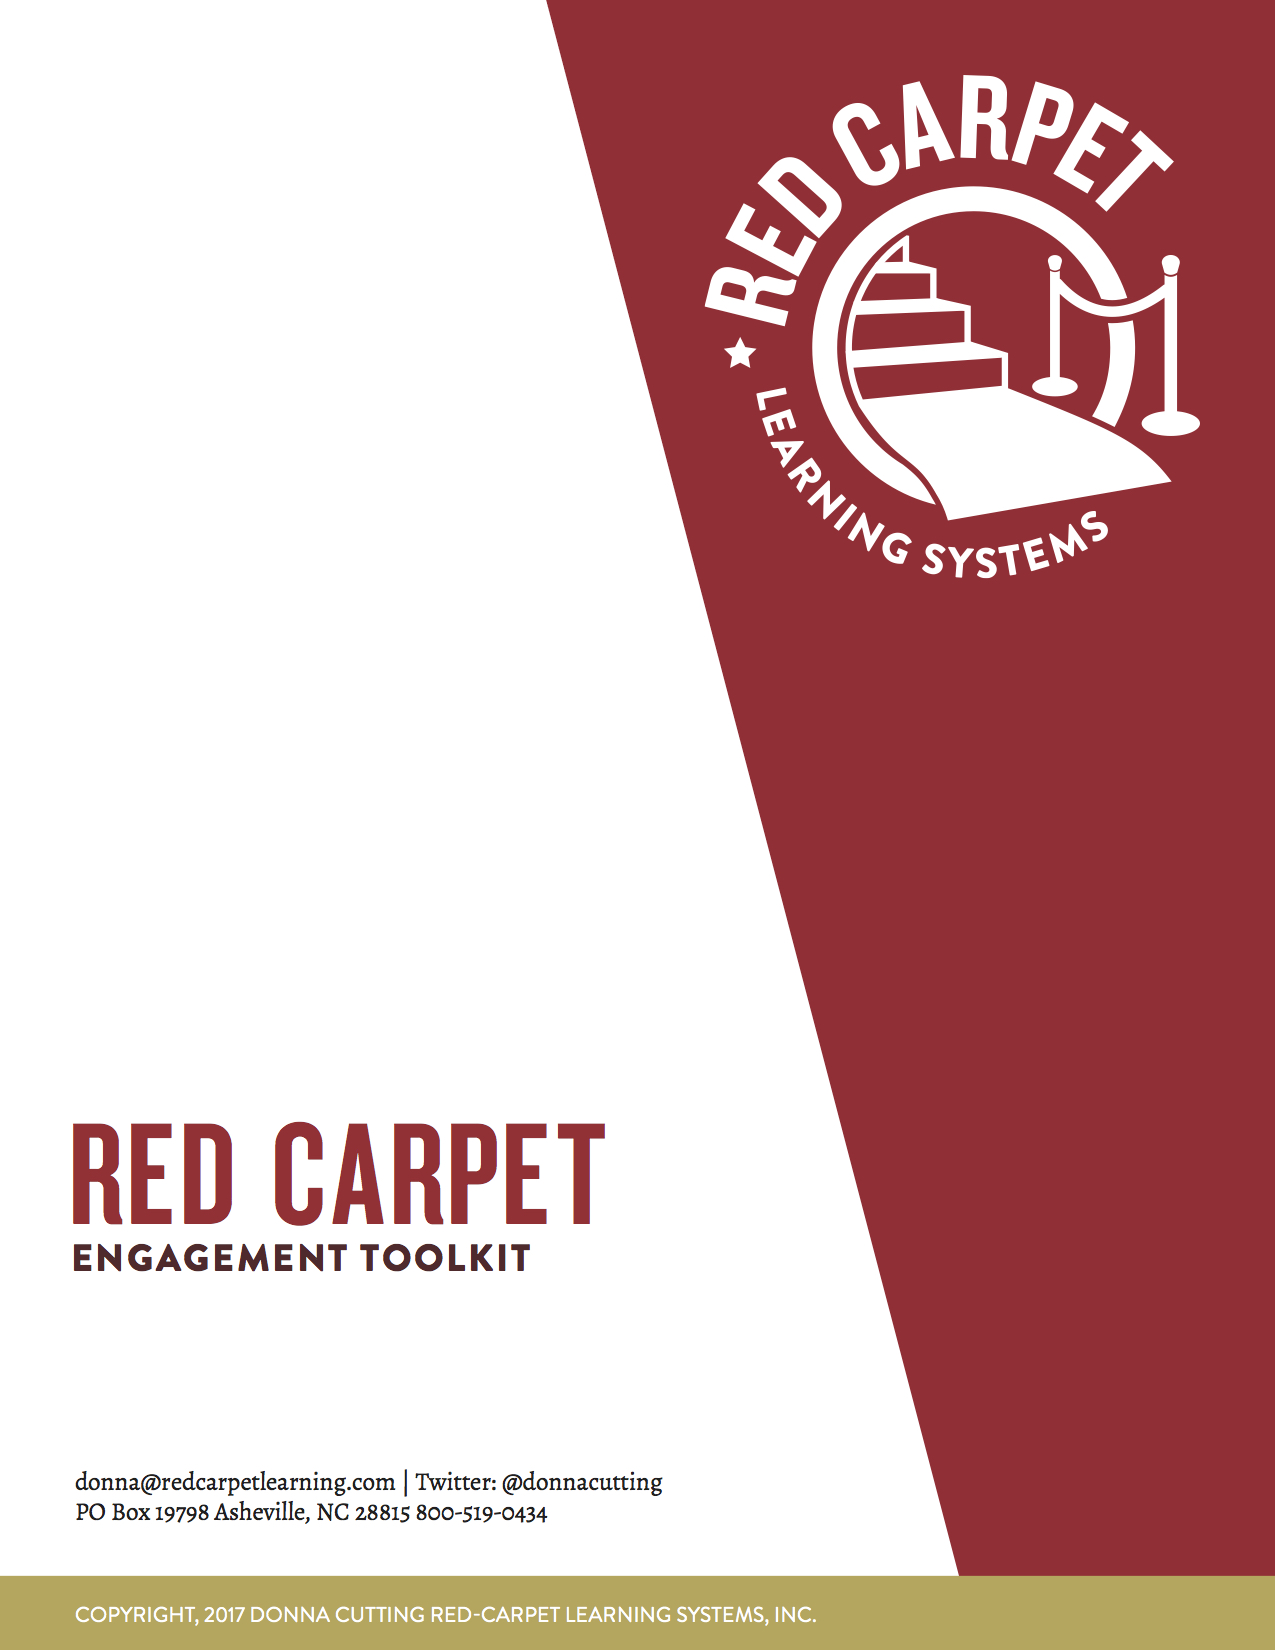 Red Carpet Engagement Toolkit